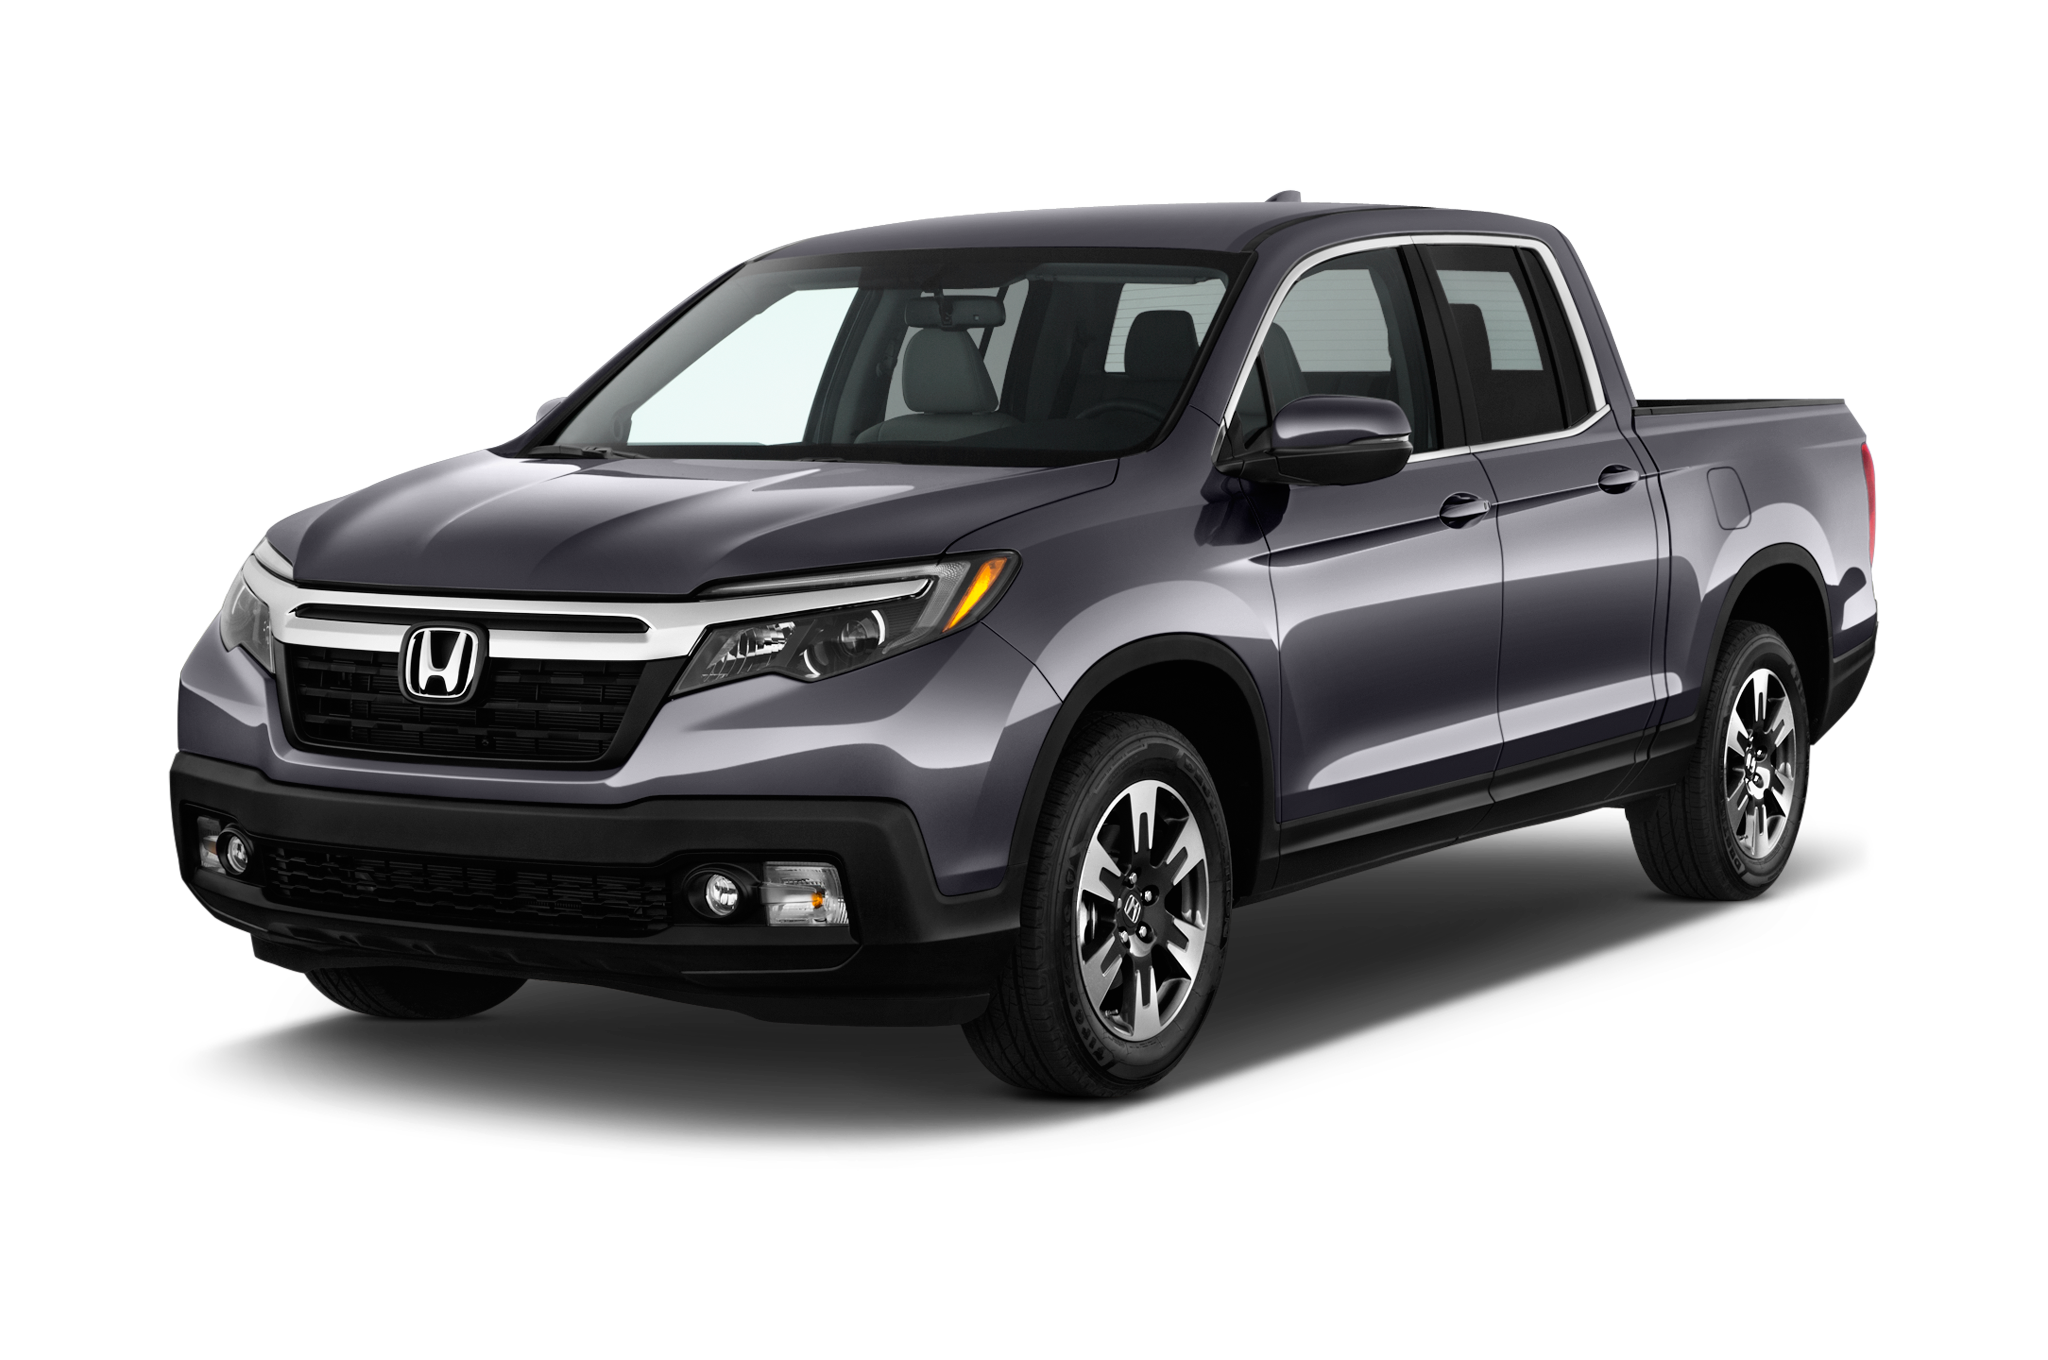 5 Things to Know about the 2017 Honda Ridgeline